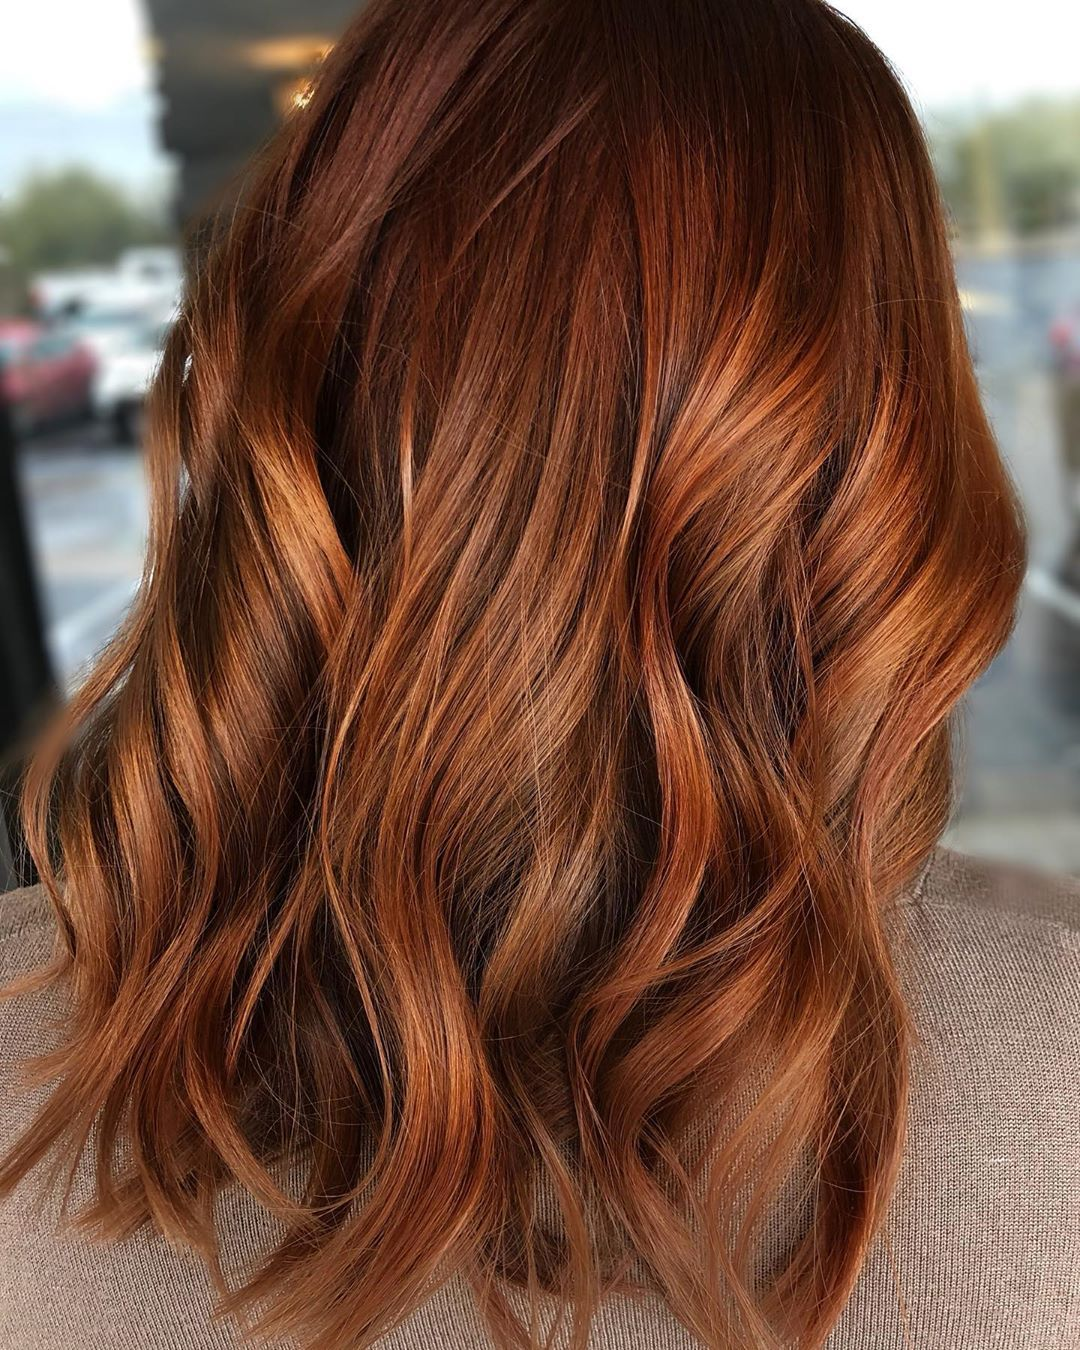 Ginger Beer Is the Red-Orange Hair-Color Trend You're About to Fall in Love With | Allure